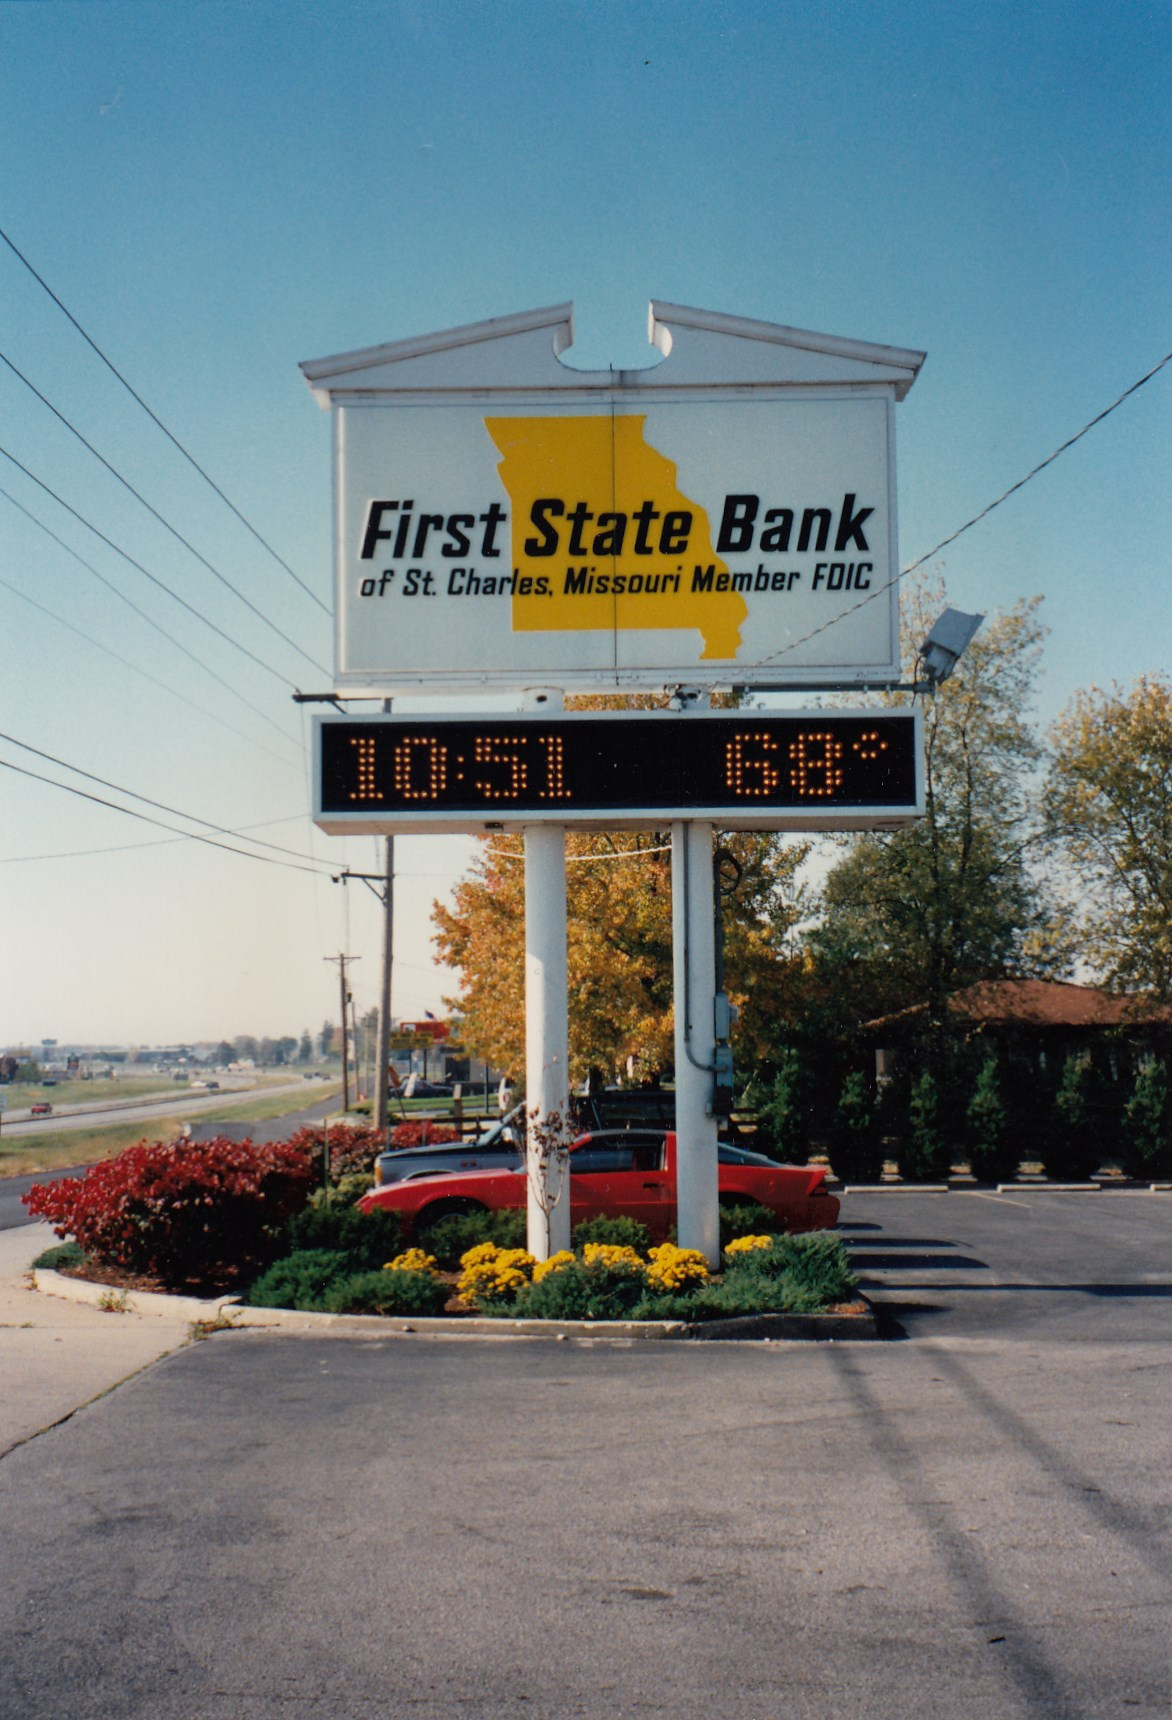 1989: Highway 94 sign